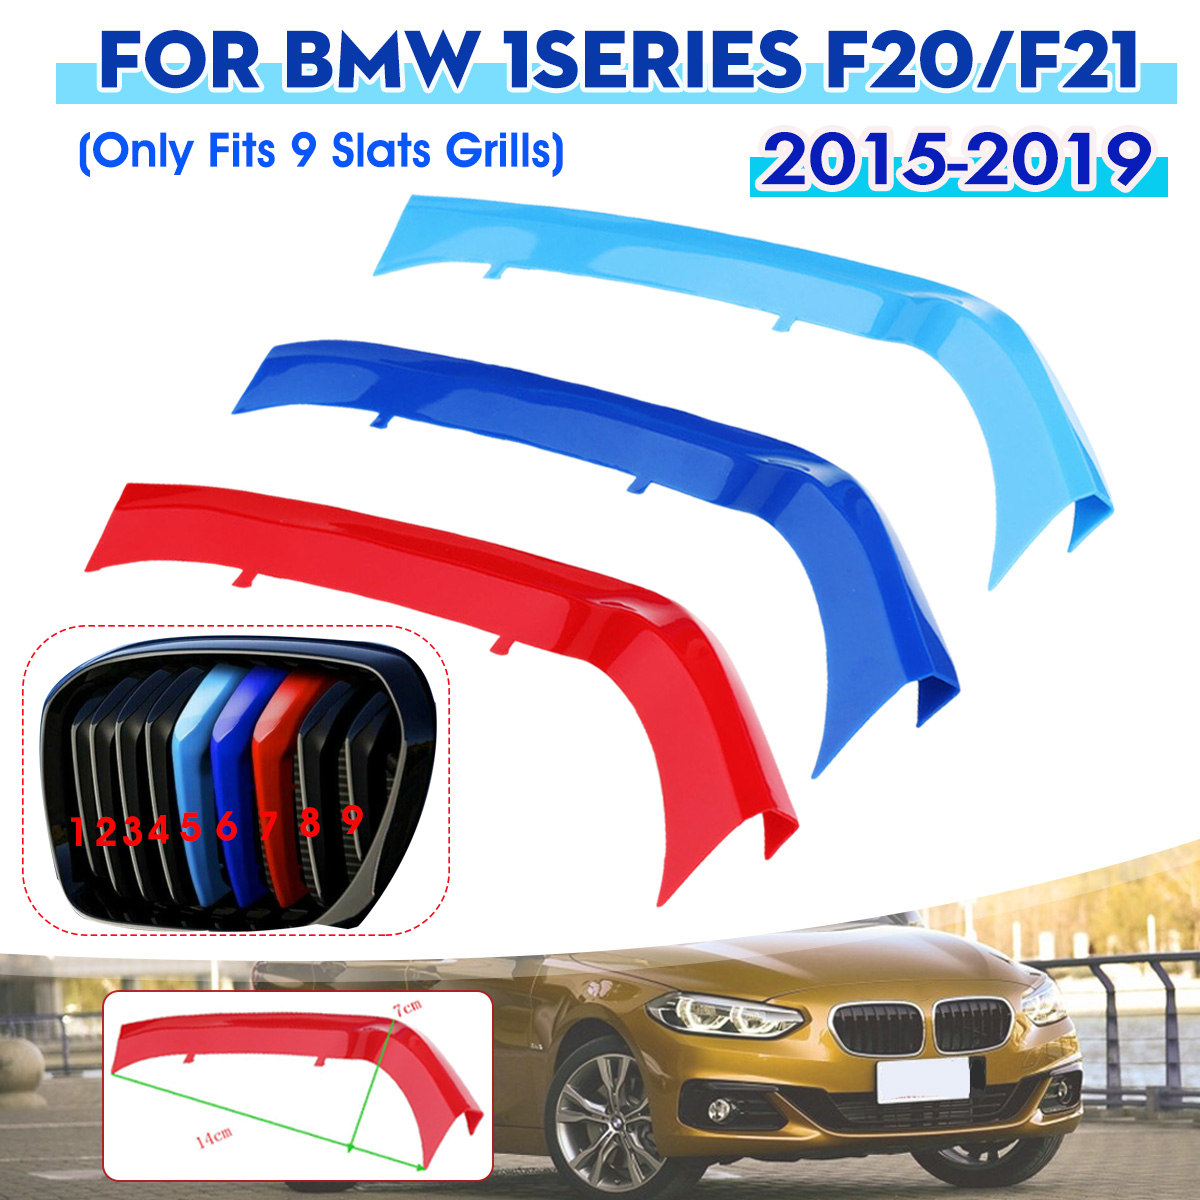 3pcs For BMW 1-Series F20/F21 2015 2016 2017 2018 9 Bar Car Front Grille Trim Sport Strips Cover Stickers Accessories